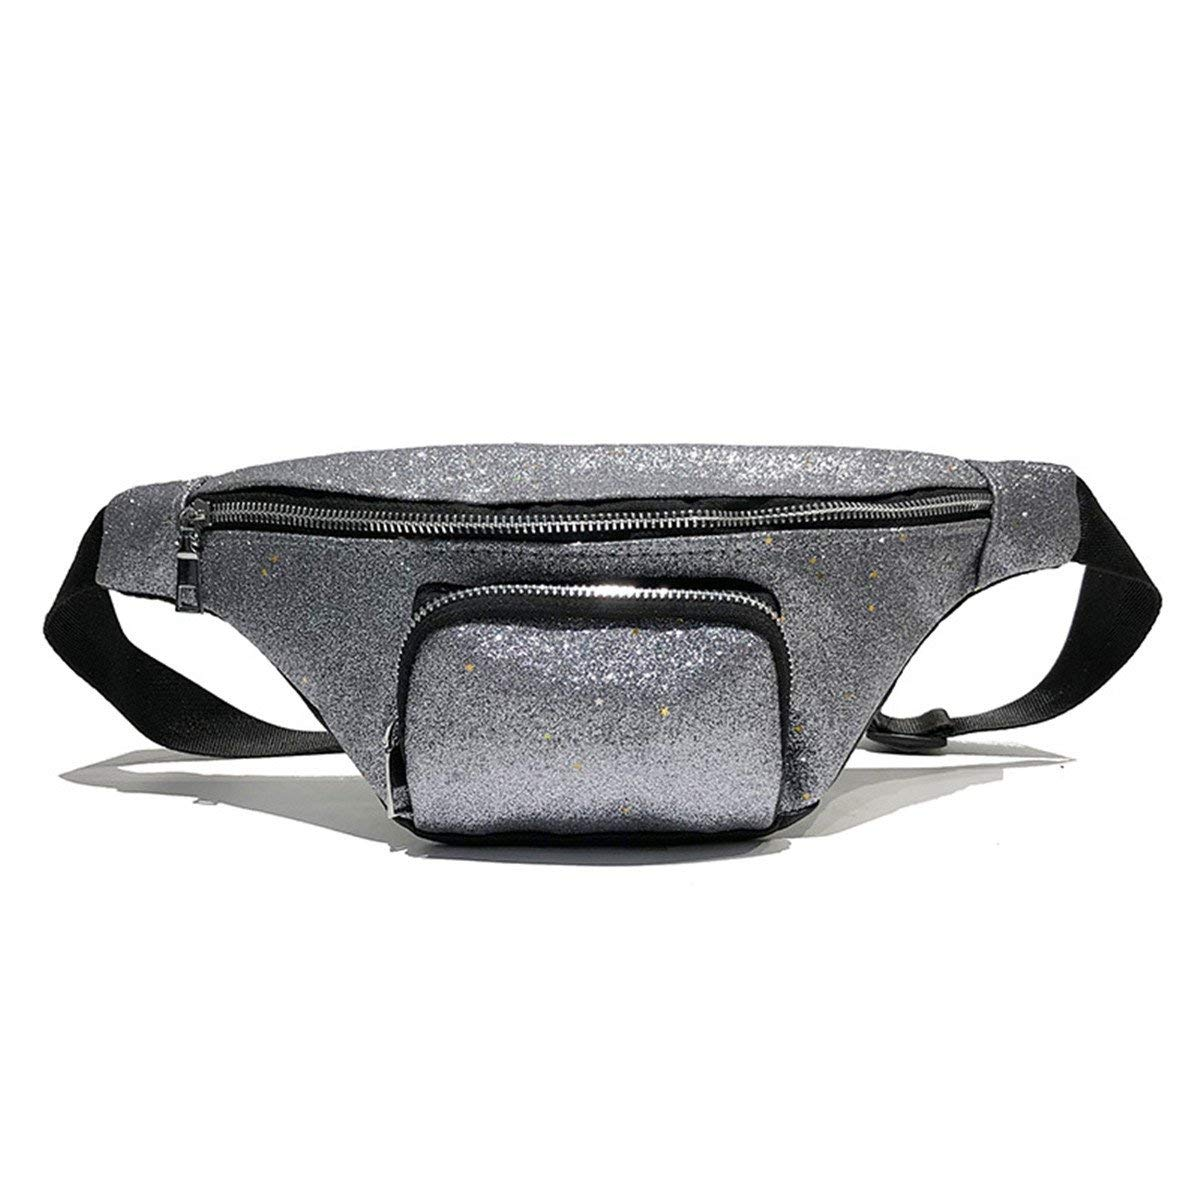 Andear Waist Bag Shiny Sequins Bumbag PU Waterproof Fanny Pack Sports Hiking Running Hip Pack Travel Chest Bag